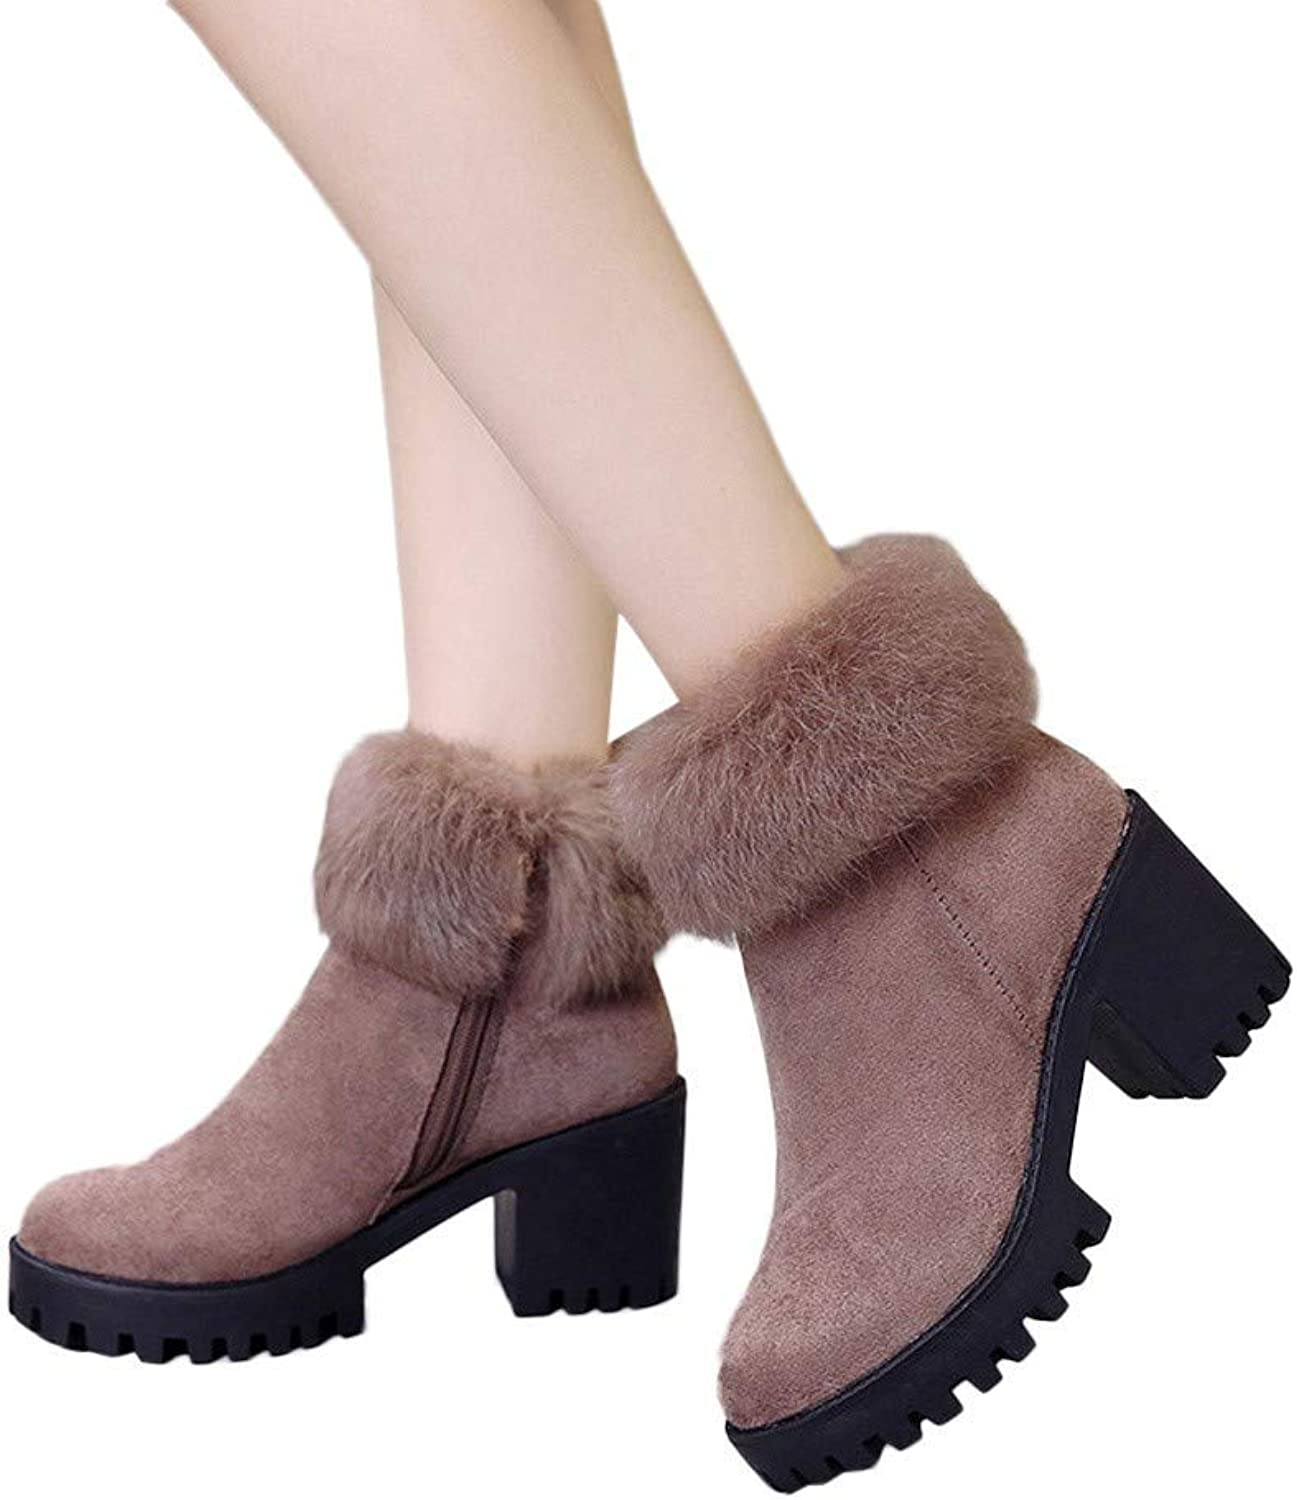 A-LING Fashion Women's High Heeled Velvet Thick Warm Waterproof Zipper Ankle Booties